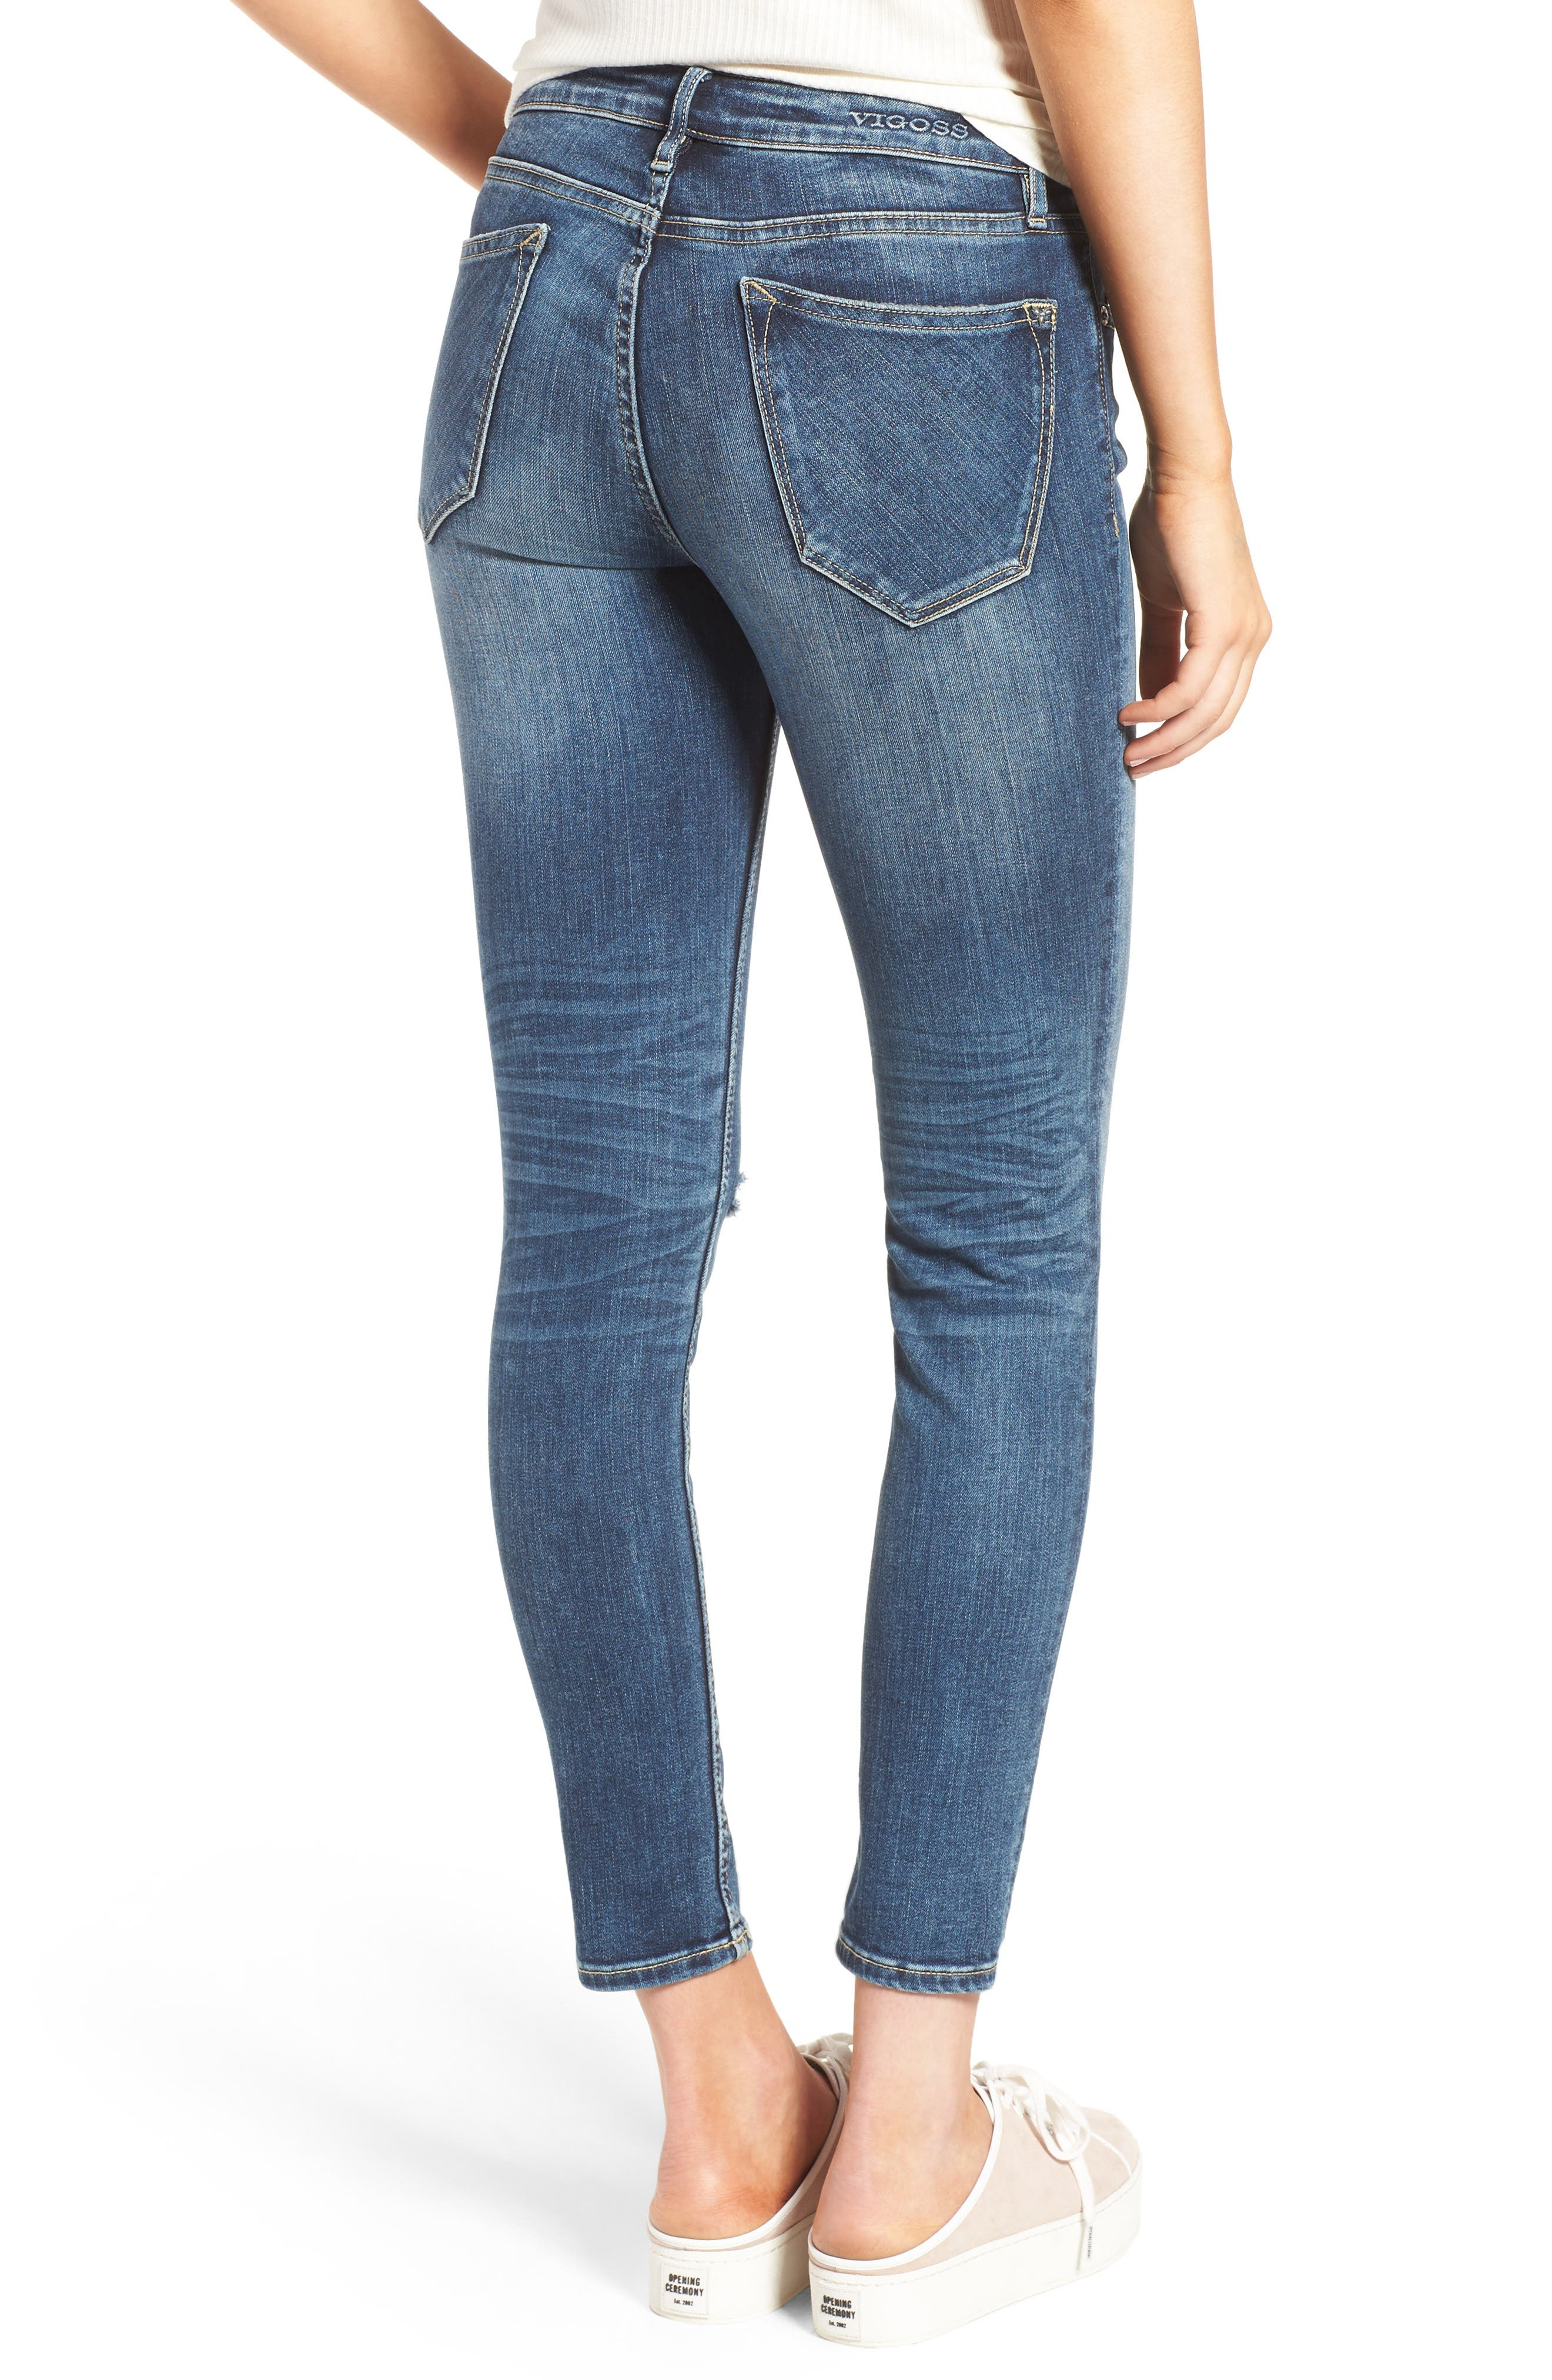 Thompson Tomboy Ripped Jeans,                             Alternate thumbnail 2, color,                             403